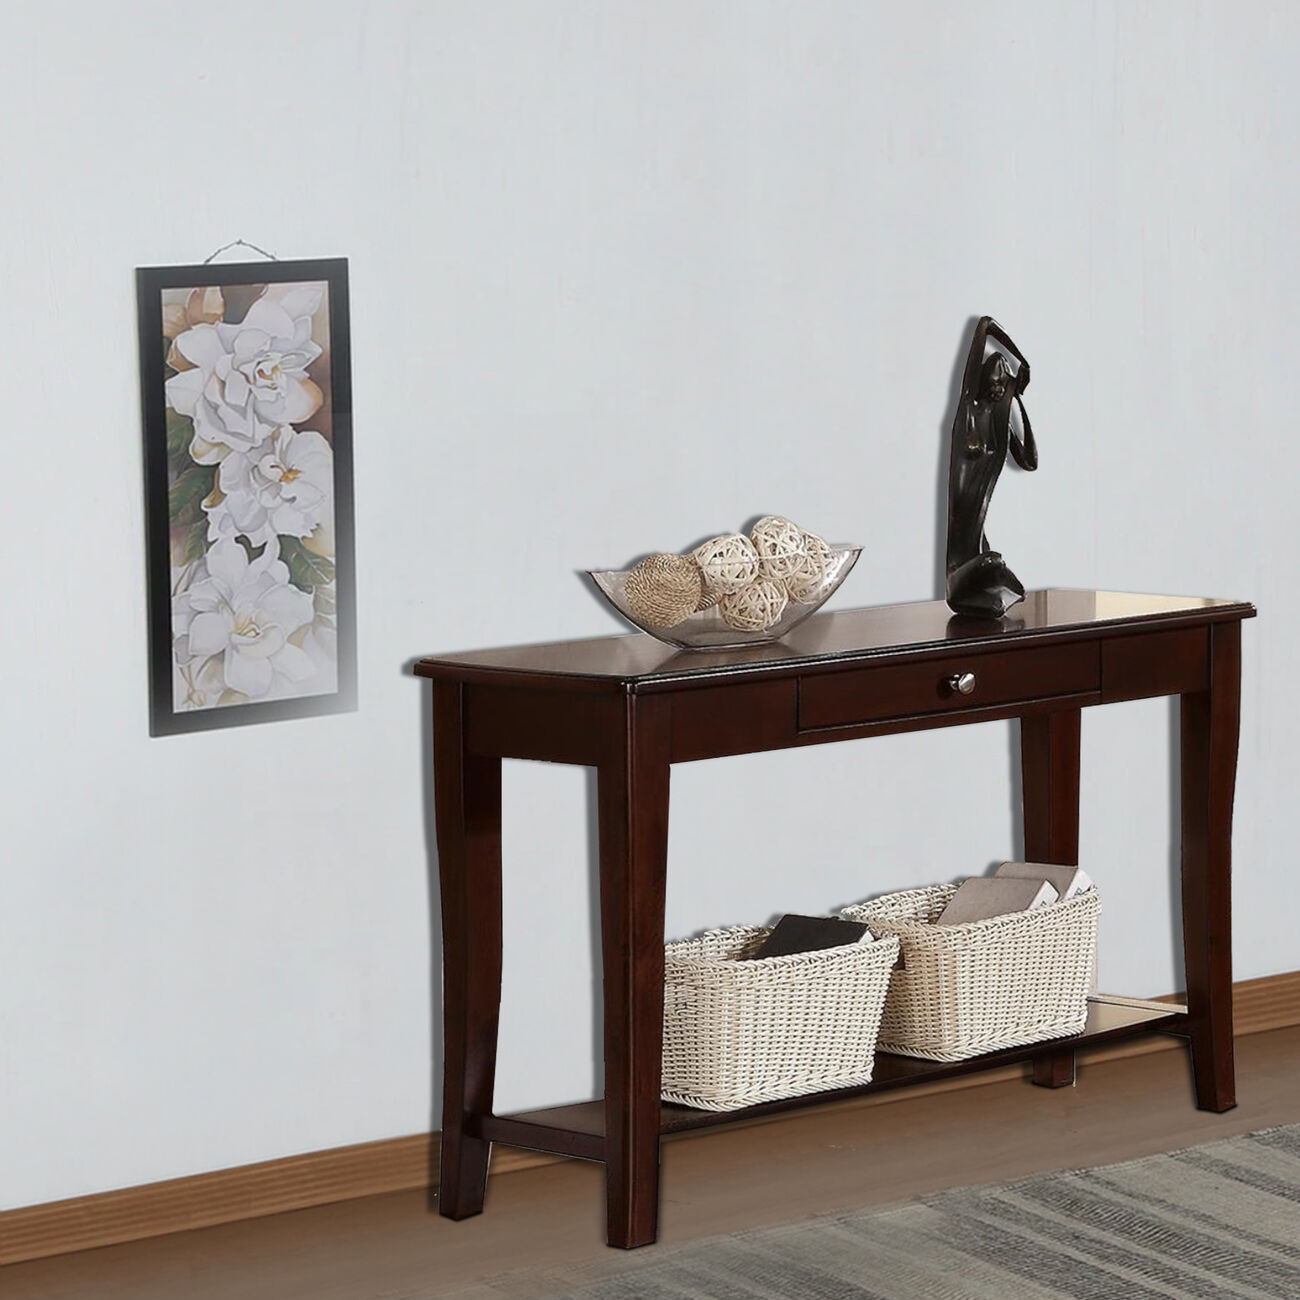 Wooden Console Table With One Drawers Brown